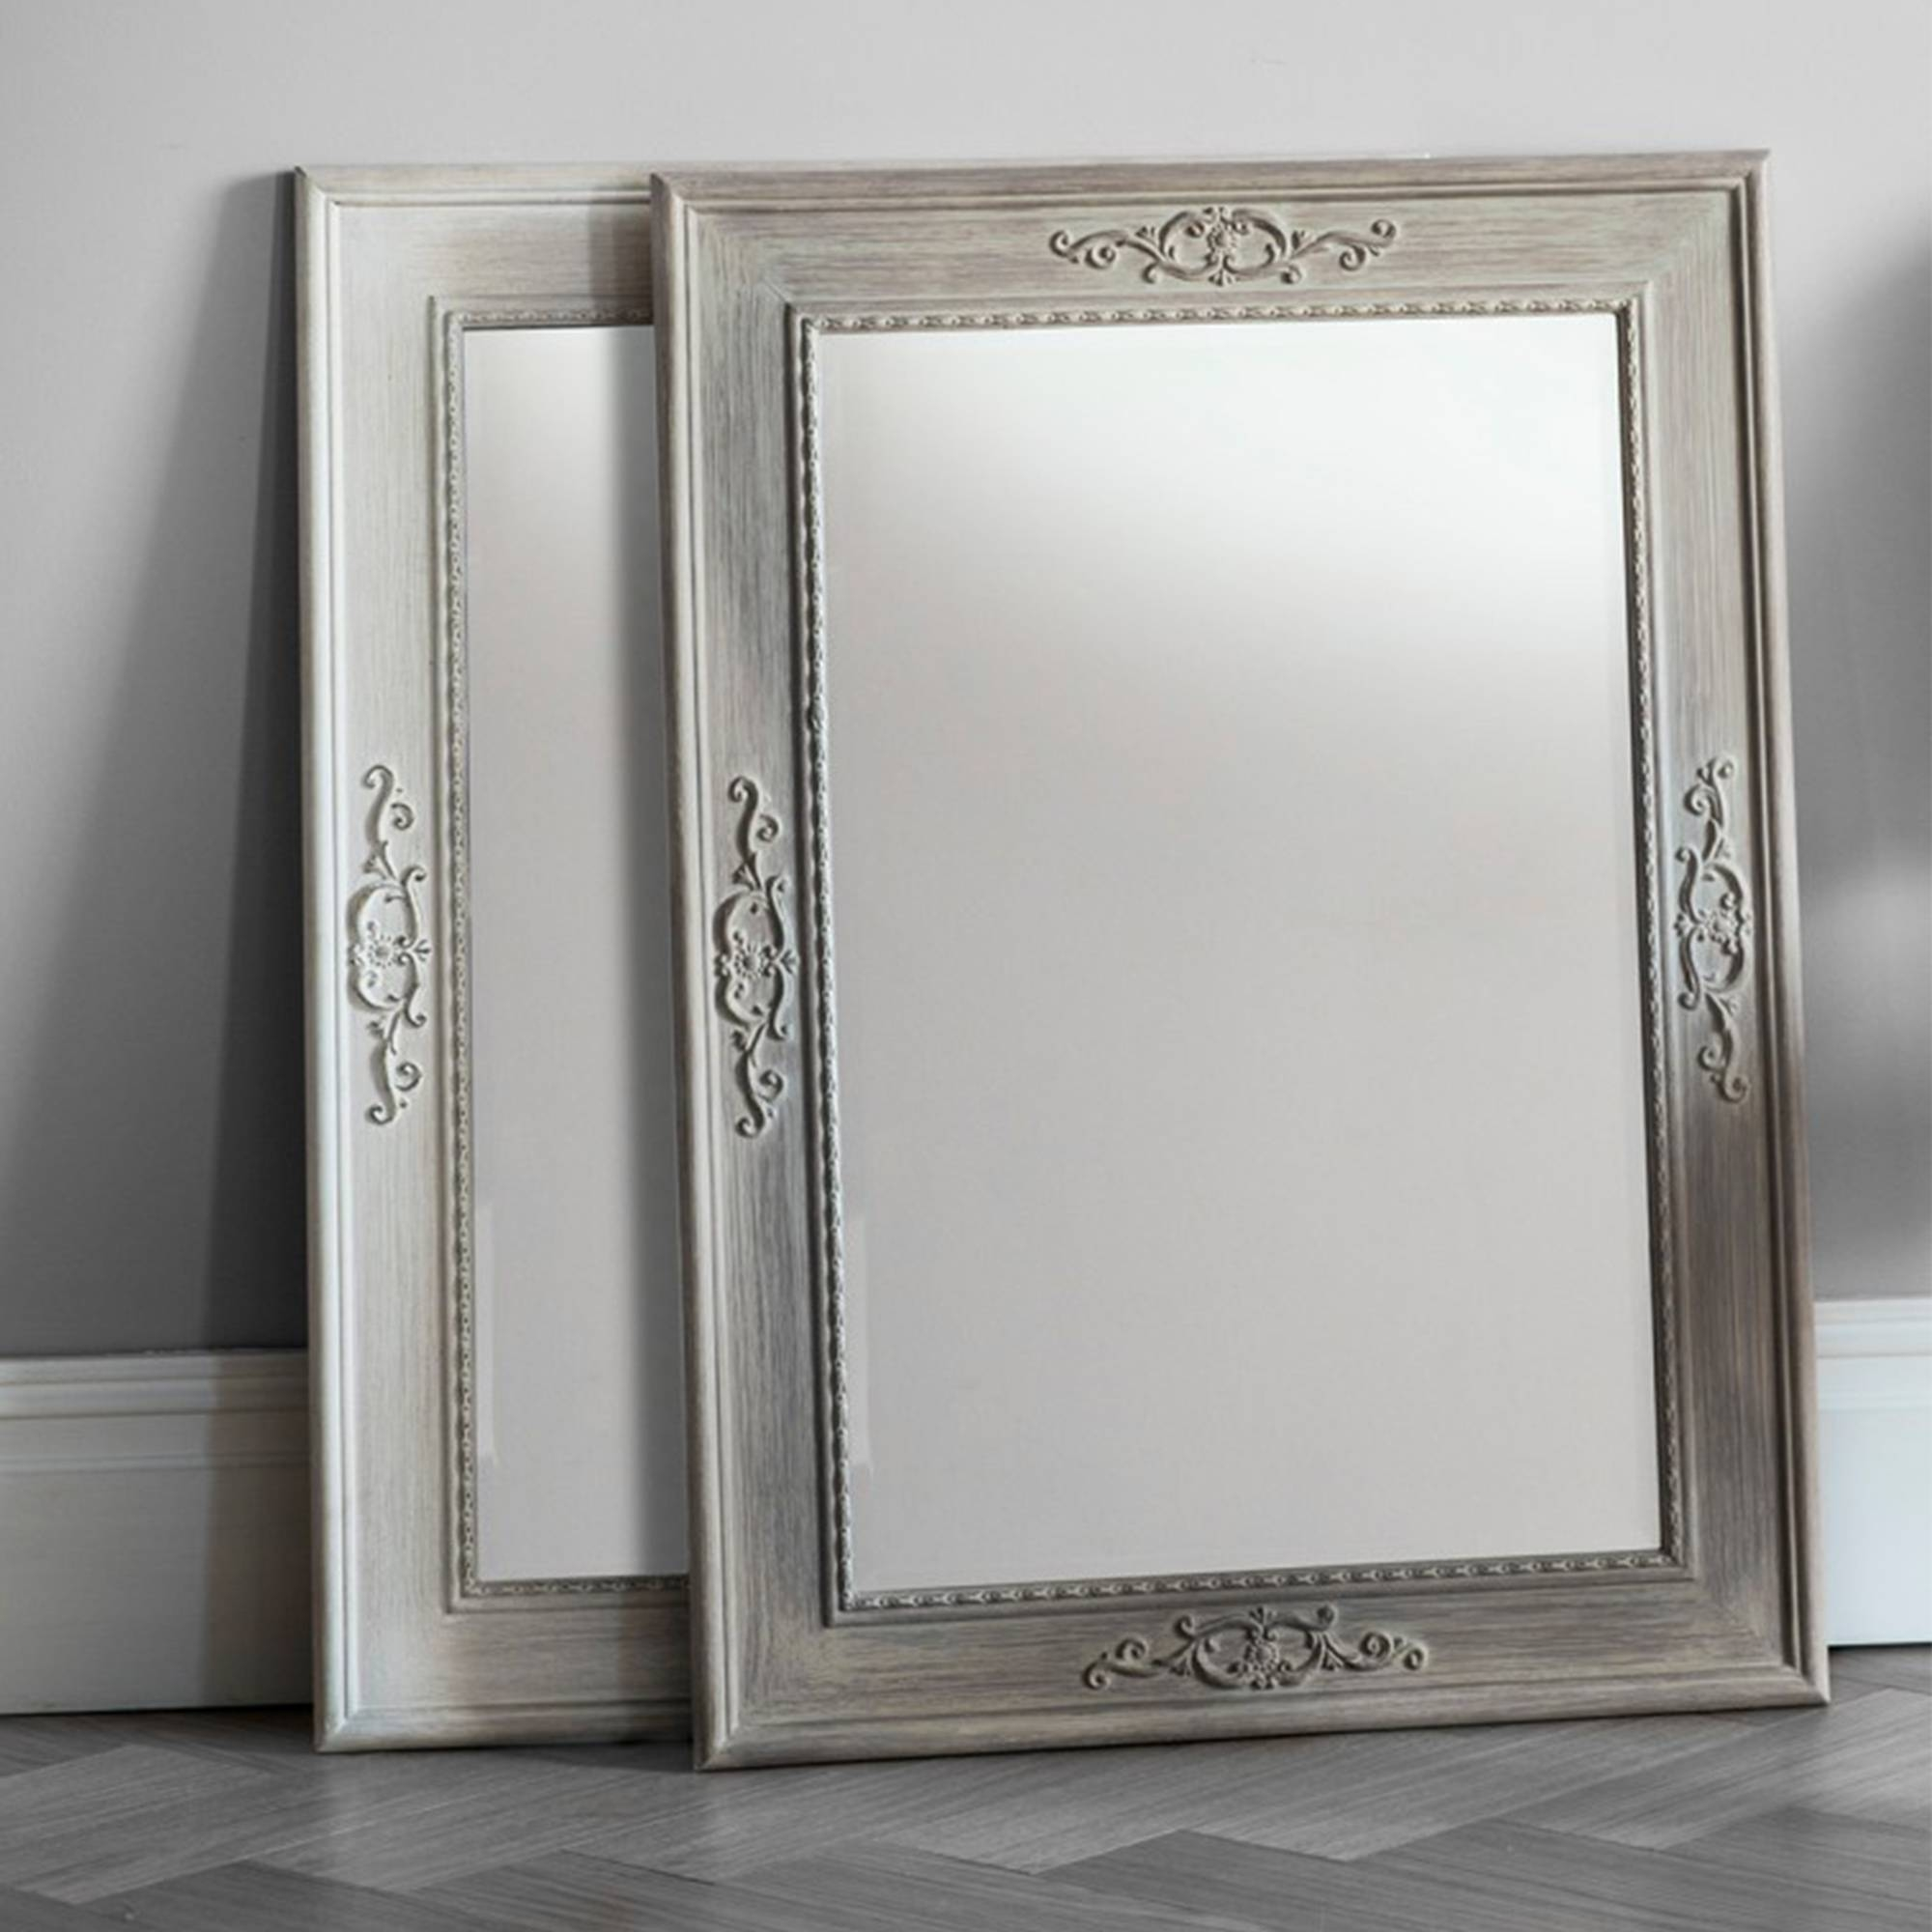 Antique French Style Wall Mirror With French Style Wall Mirrors (View 1 of 15)